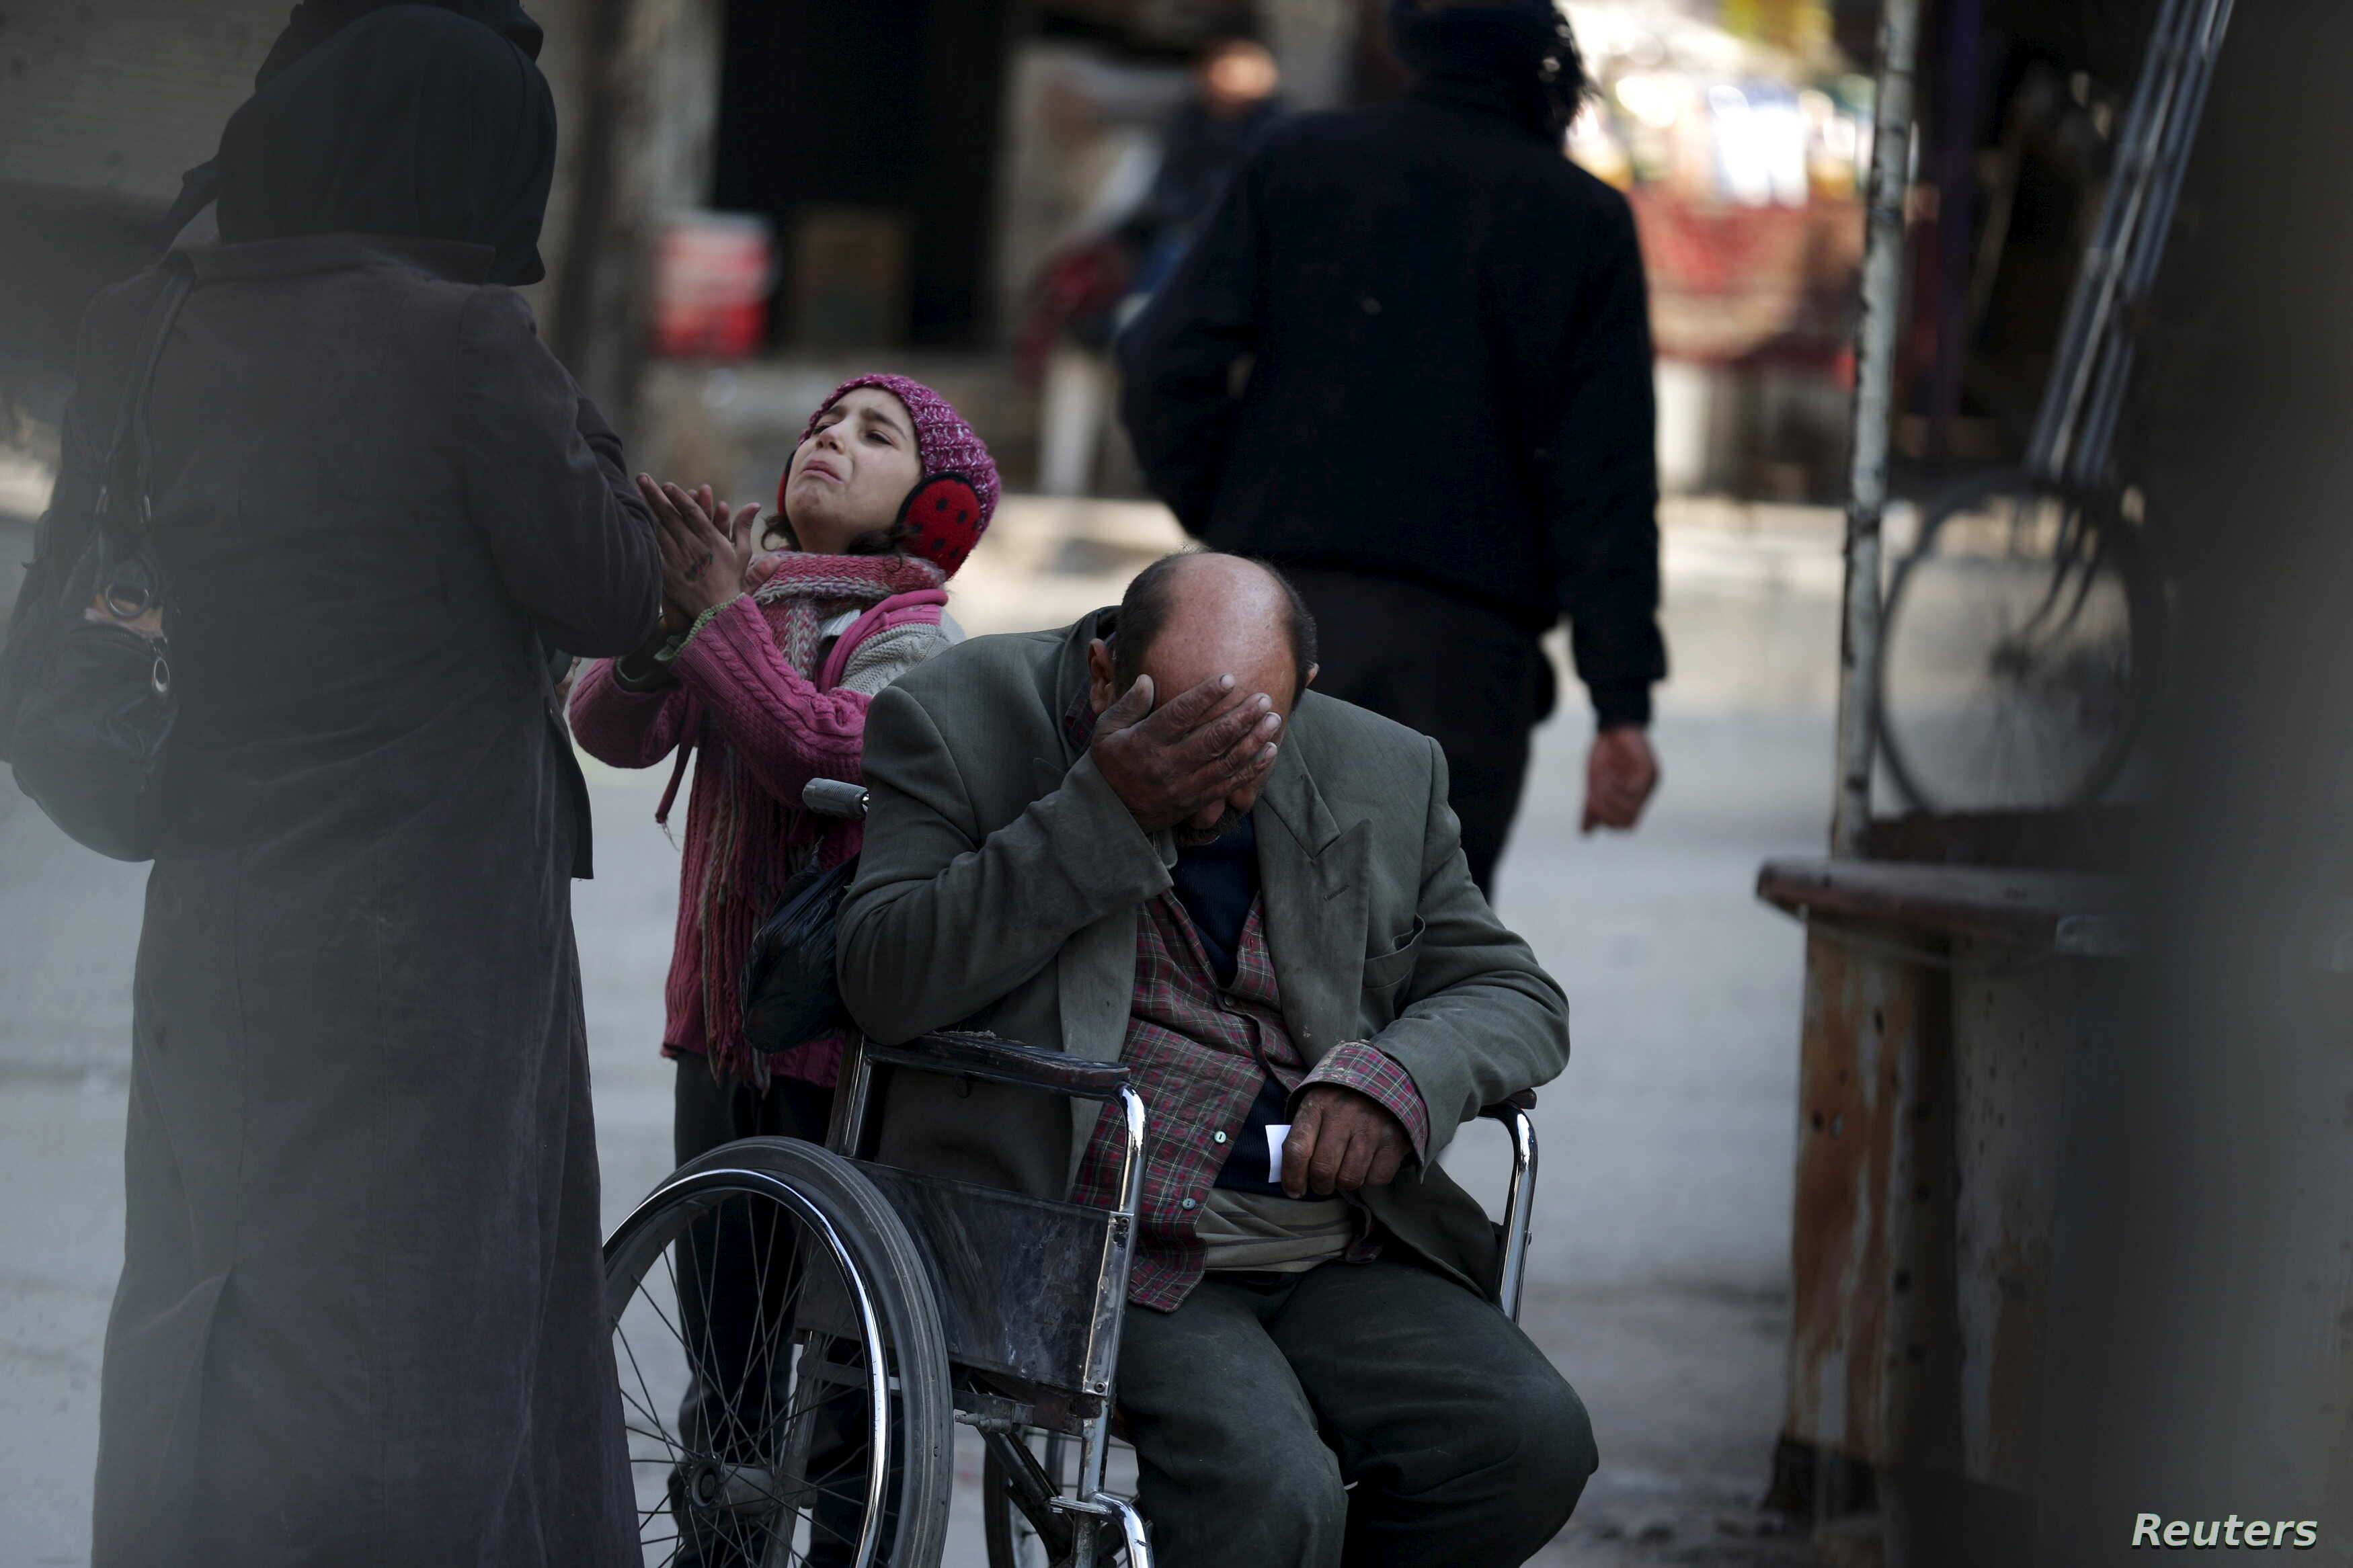 A girl with her father in a wheelchair asks for help from passers-by to pay a medical bill, in Douma, Syria, Feb. 3, 2016.